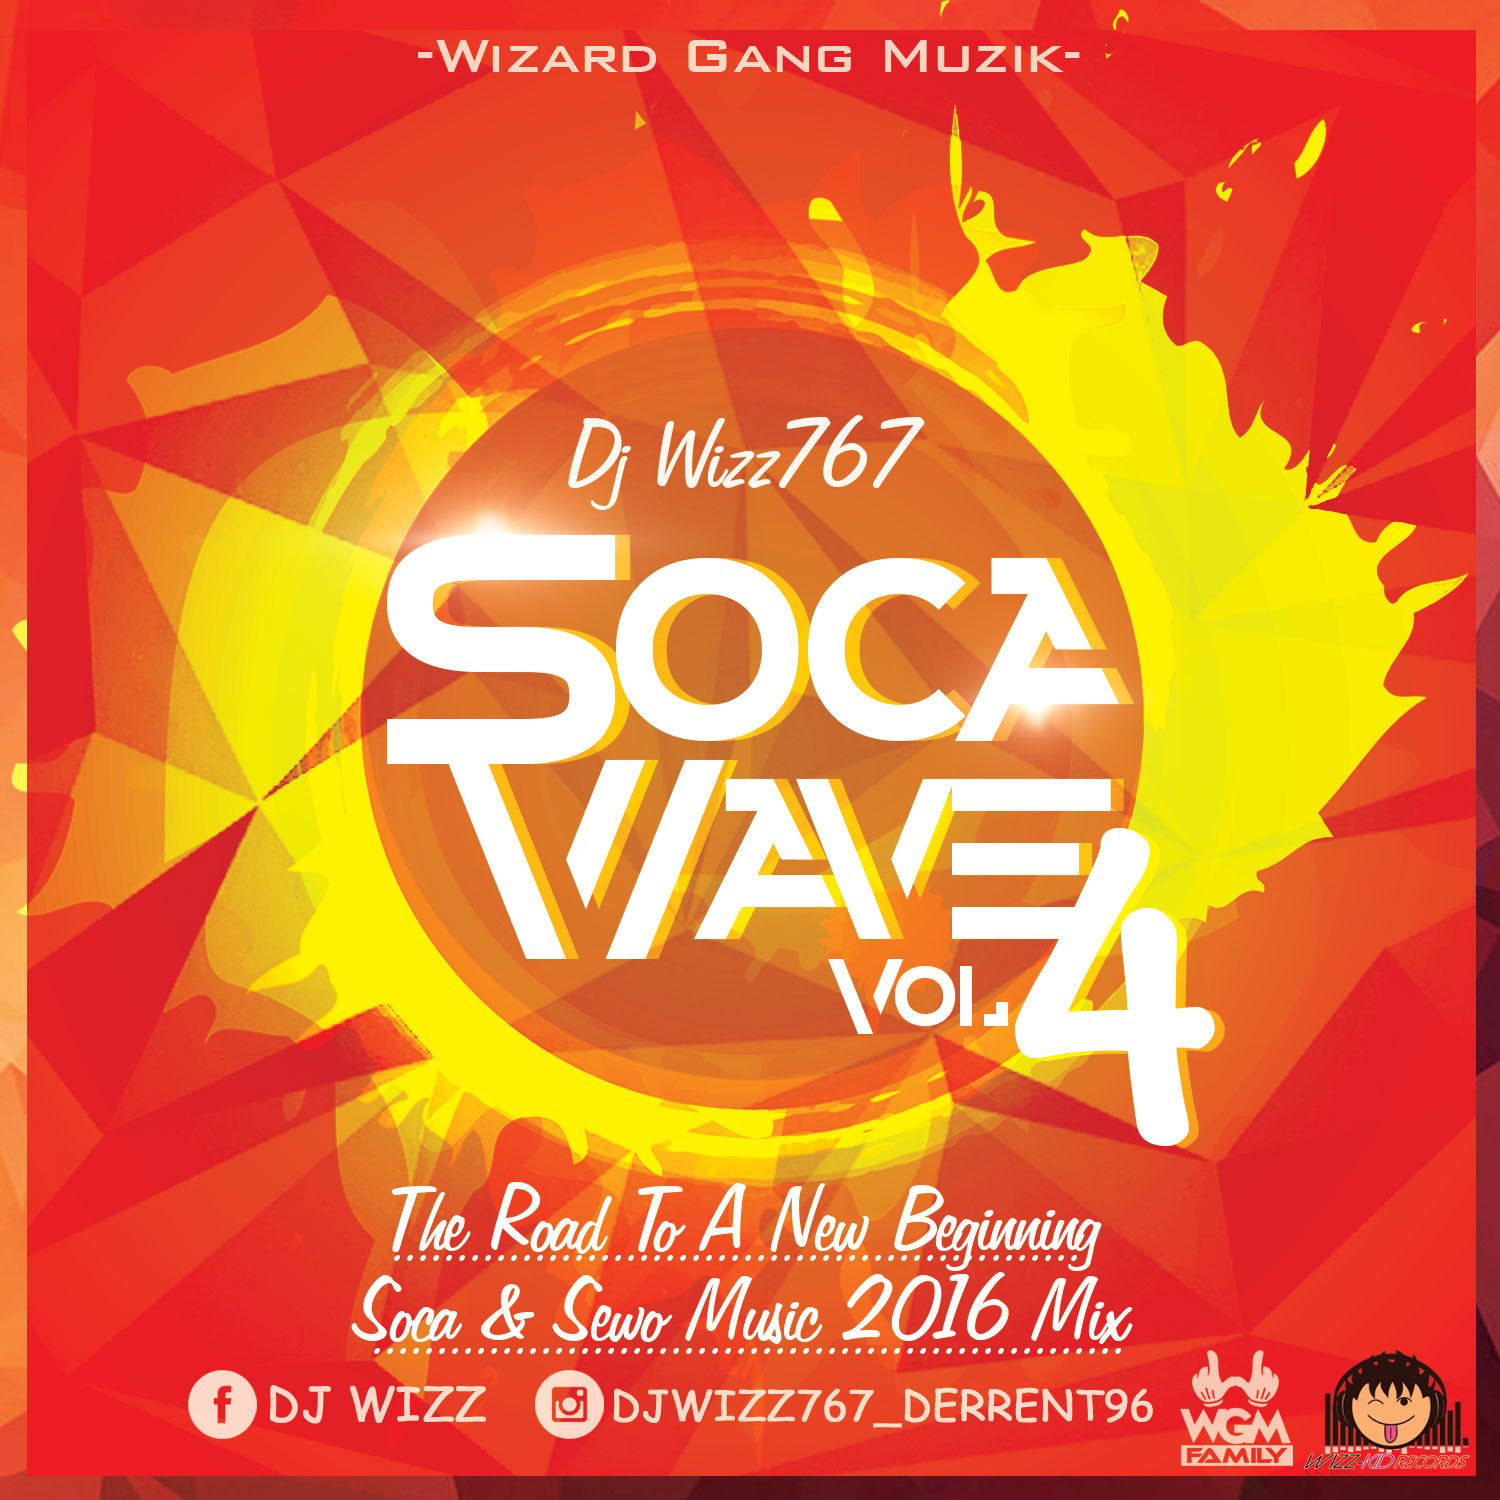 Dj Wizz767 – Soca Wave.Vol 04 (The Road To A New Beginning)